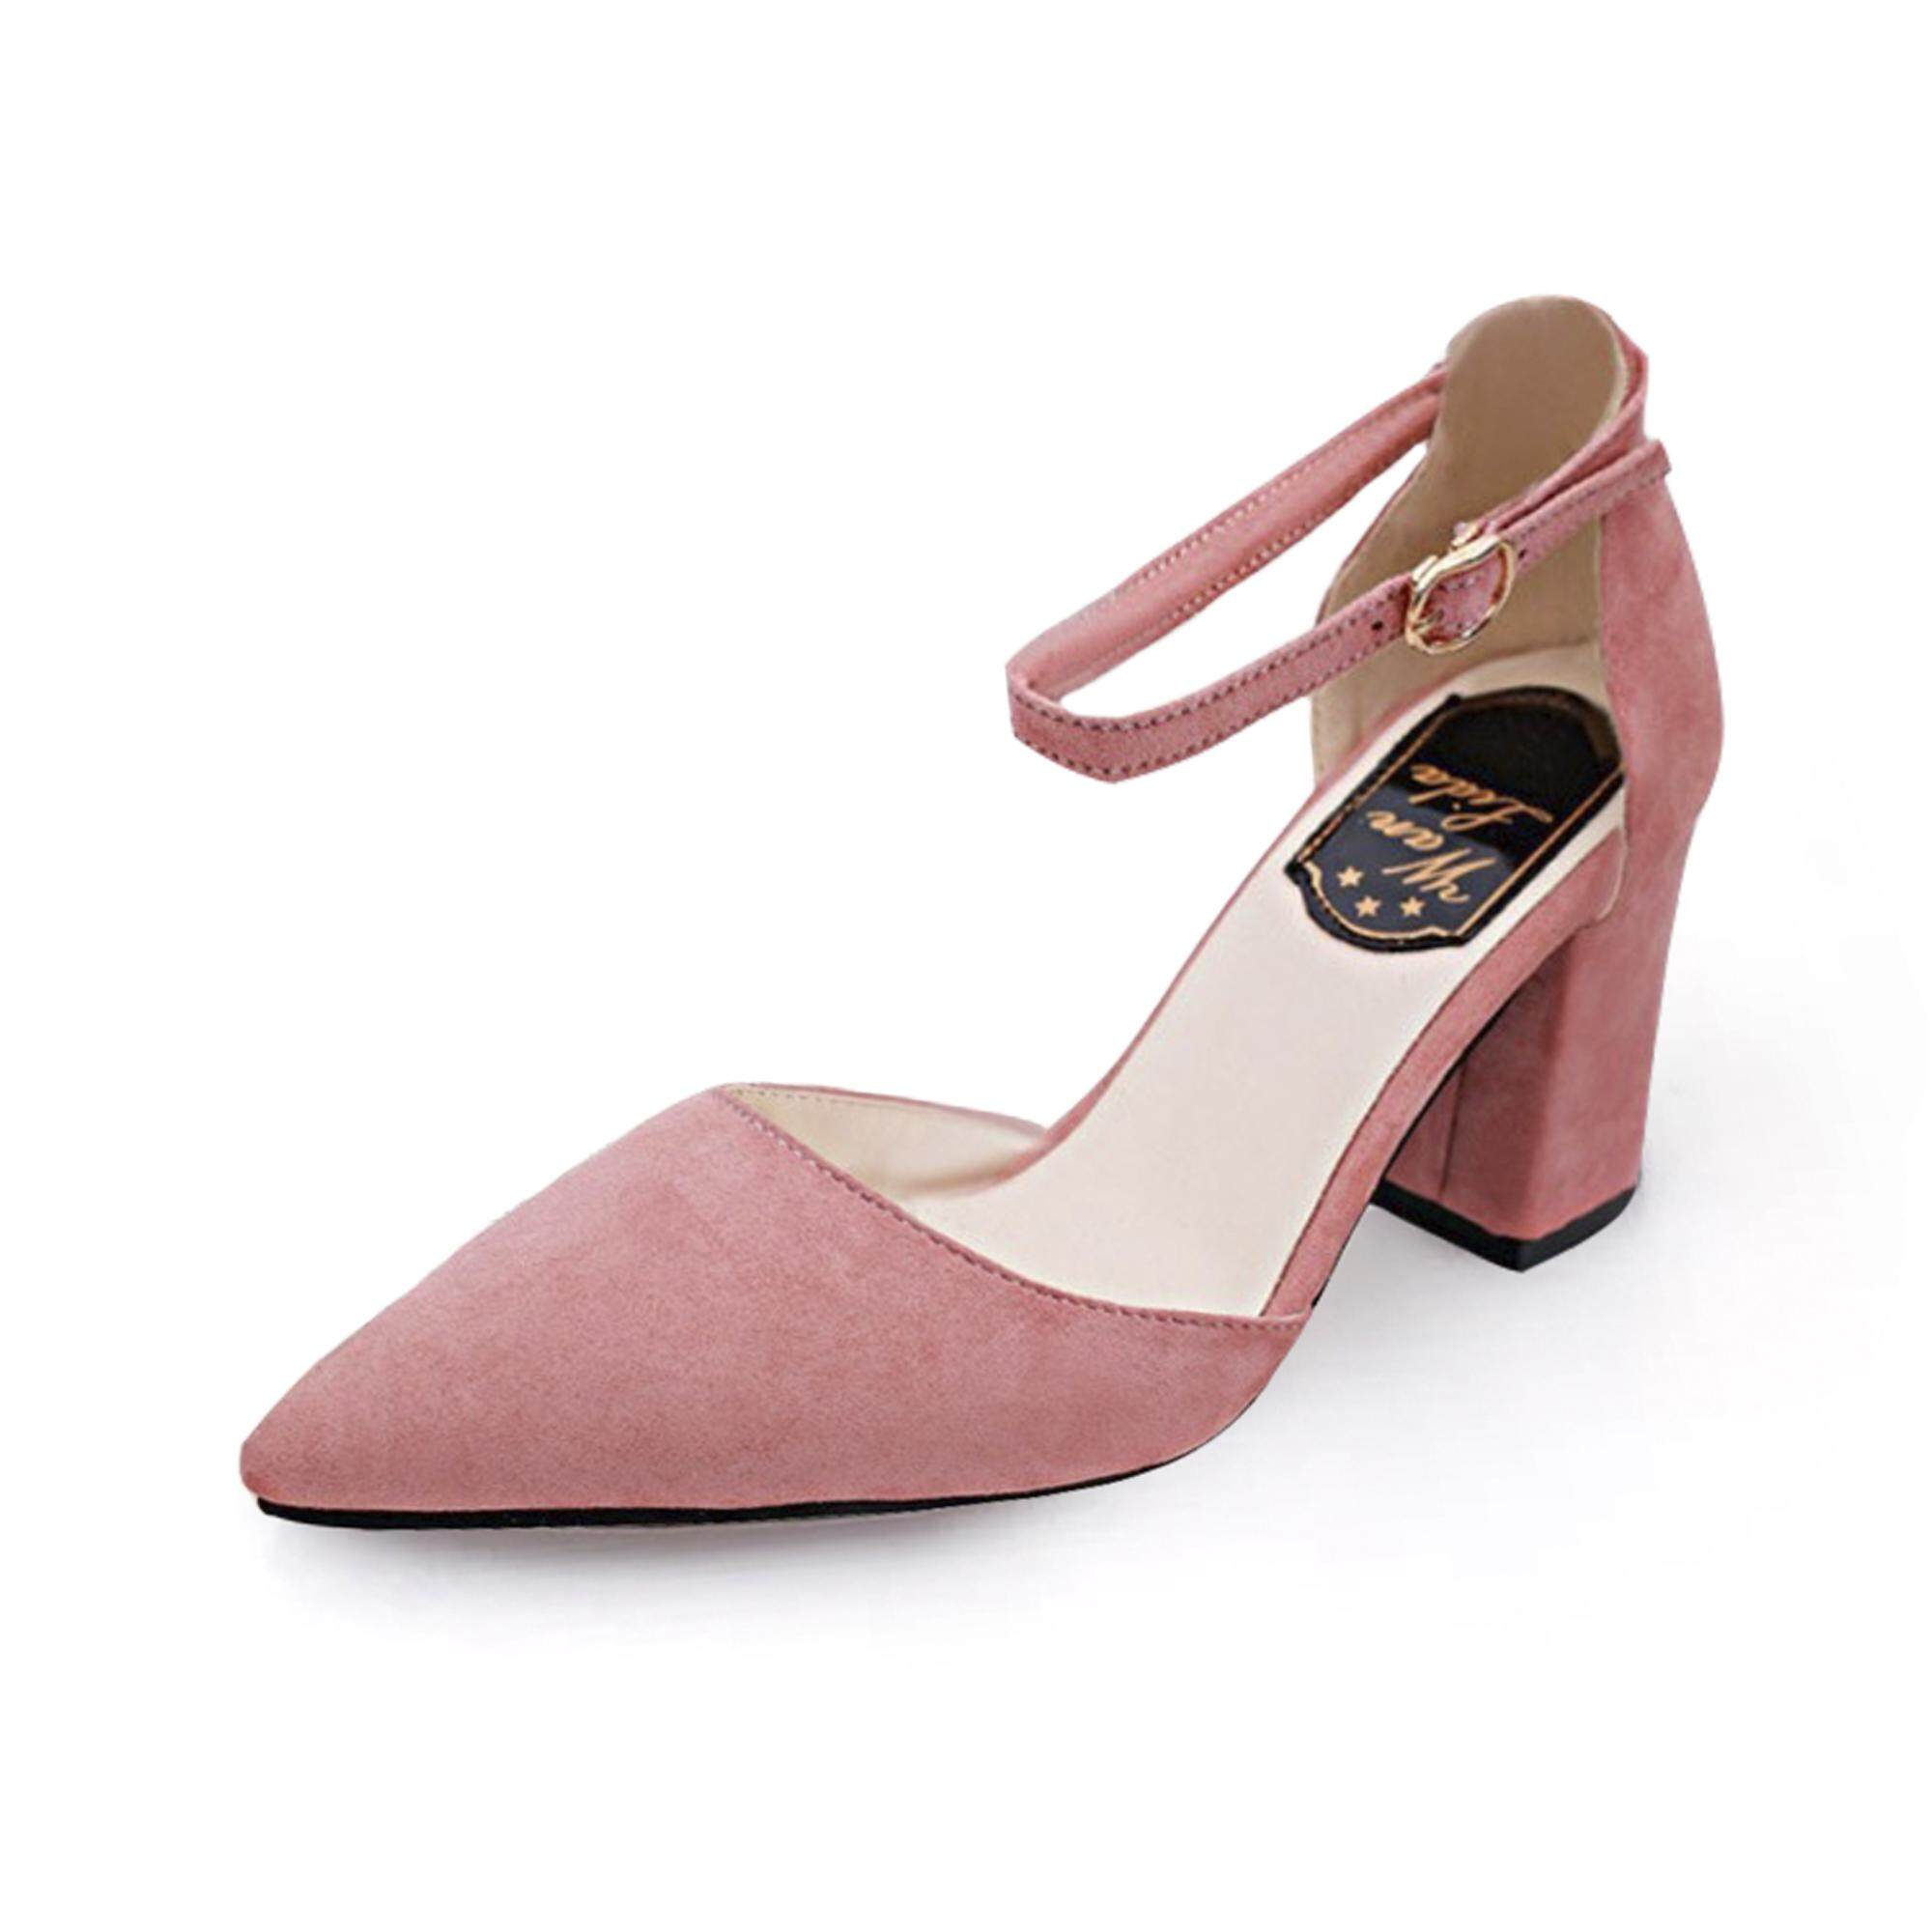 d7de186a94e Ladies Shoes for the Best Price in Malaysia